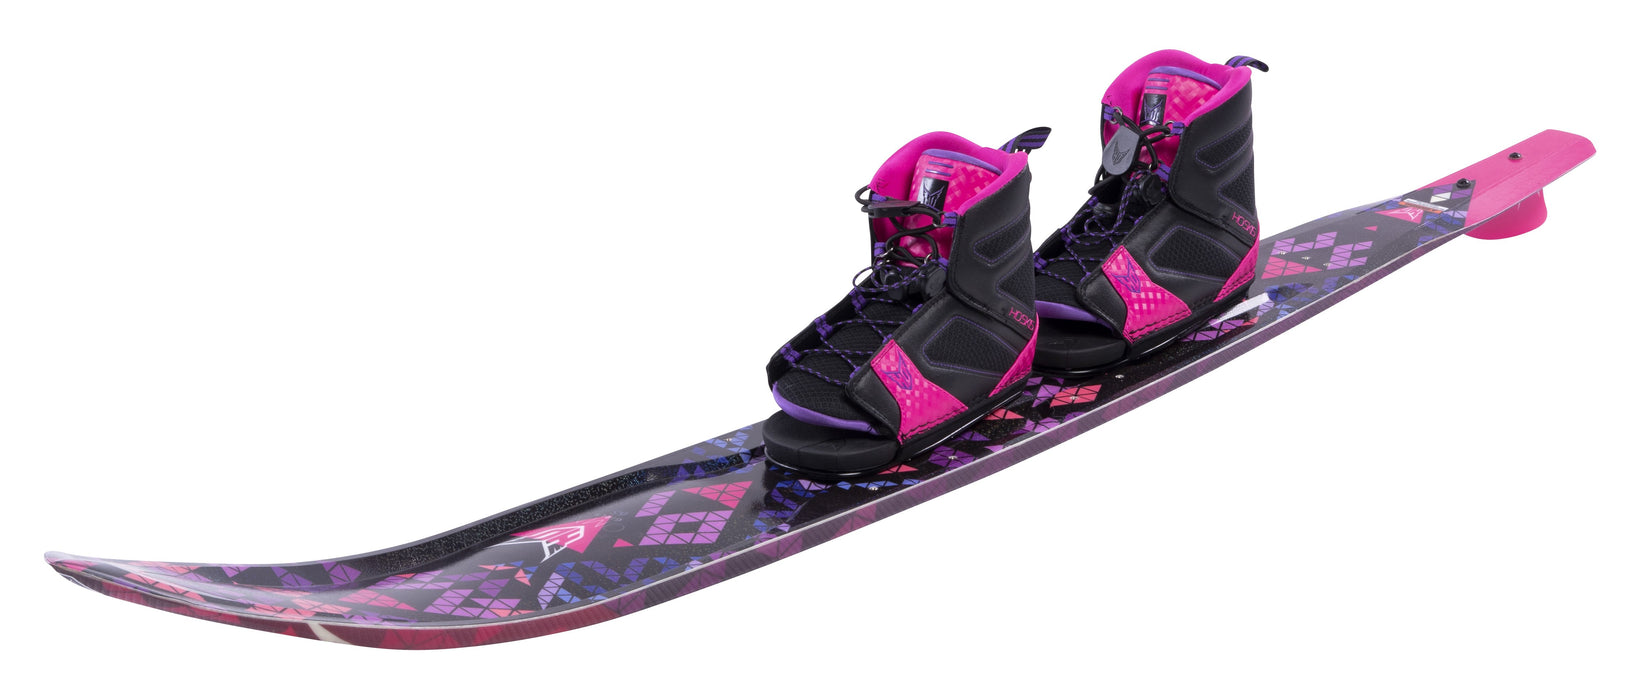 HO Carbon Omni Women's Water Ski Package 2019